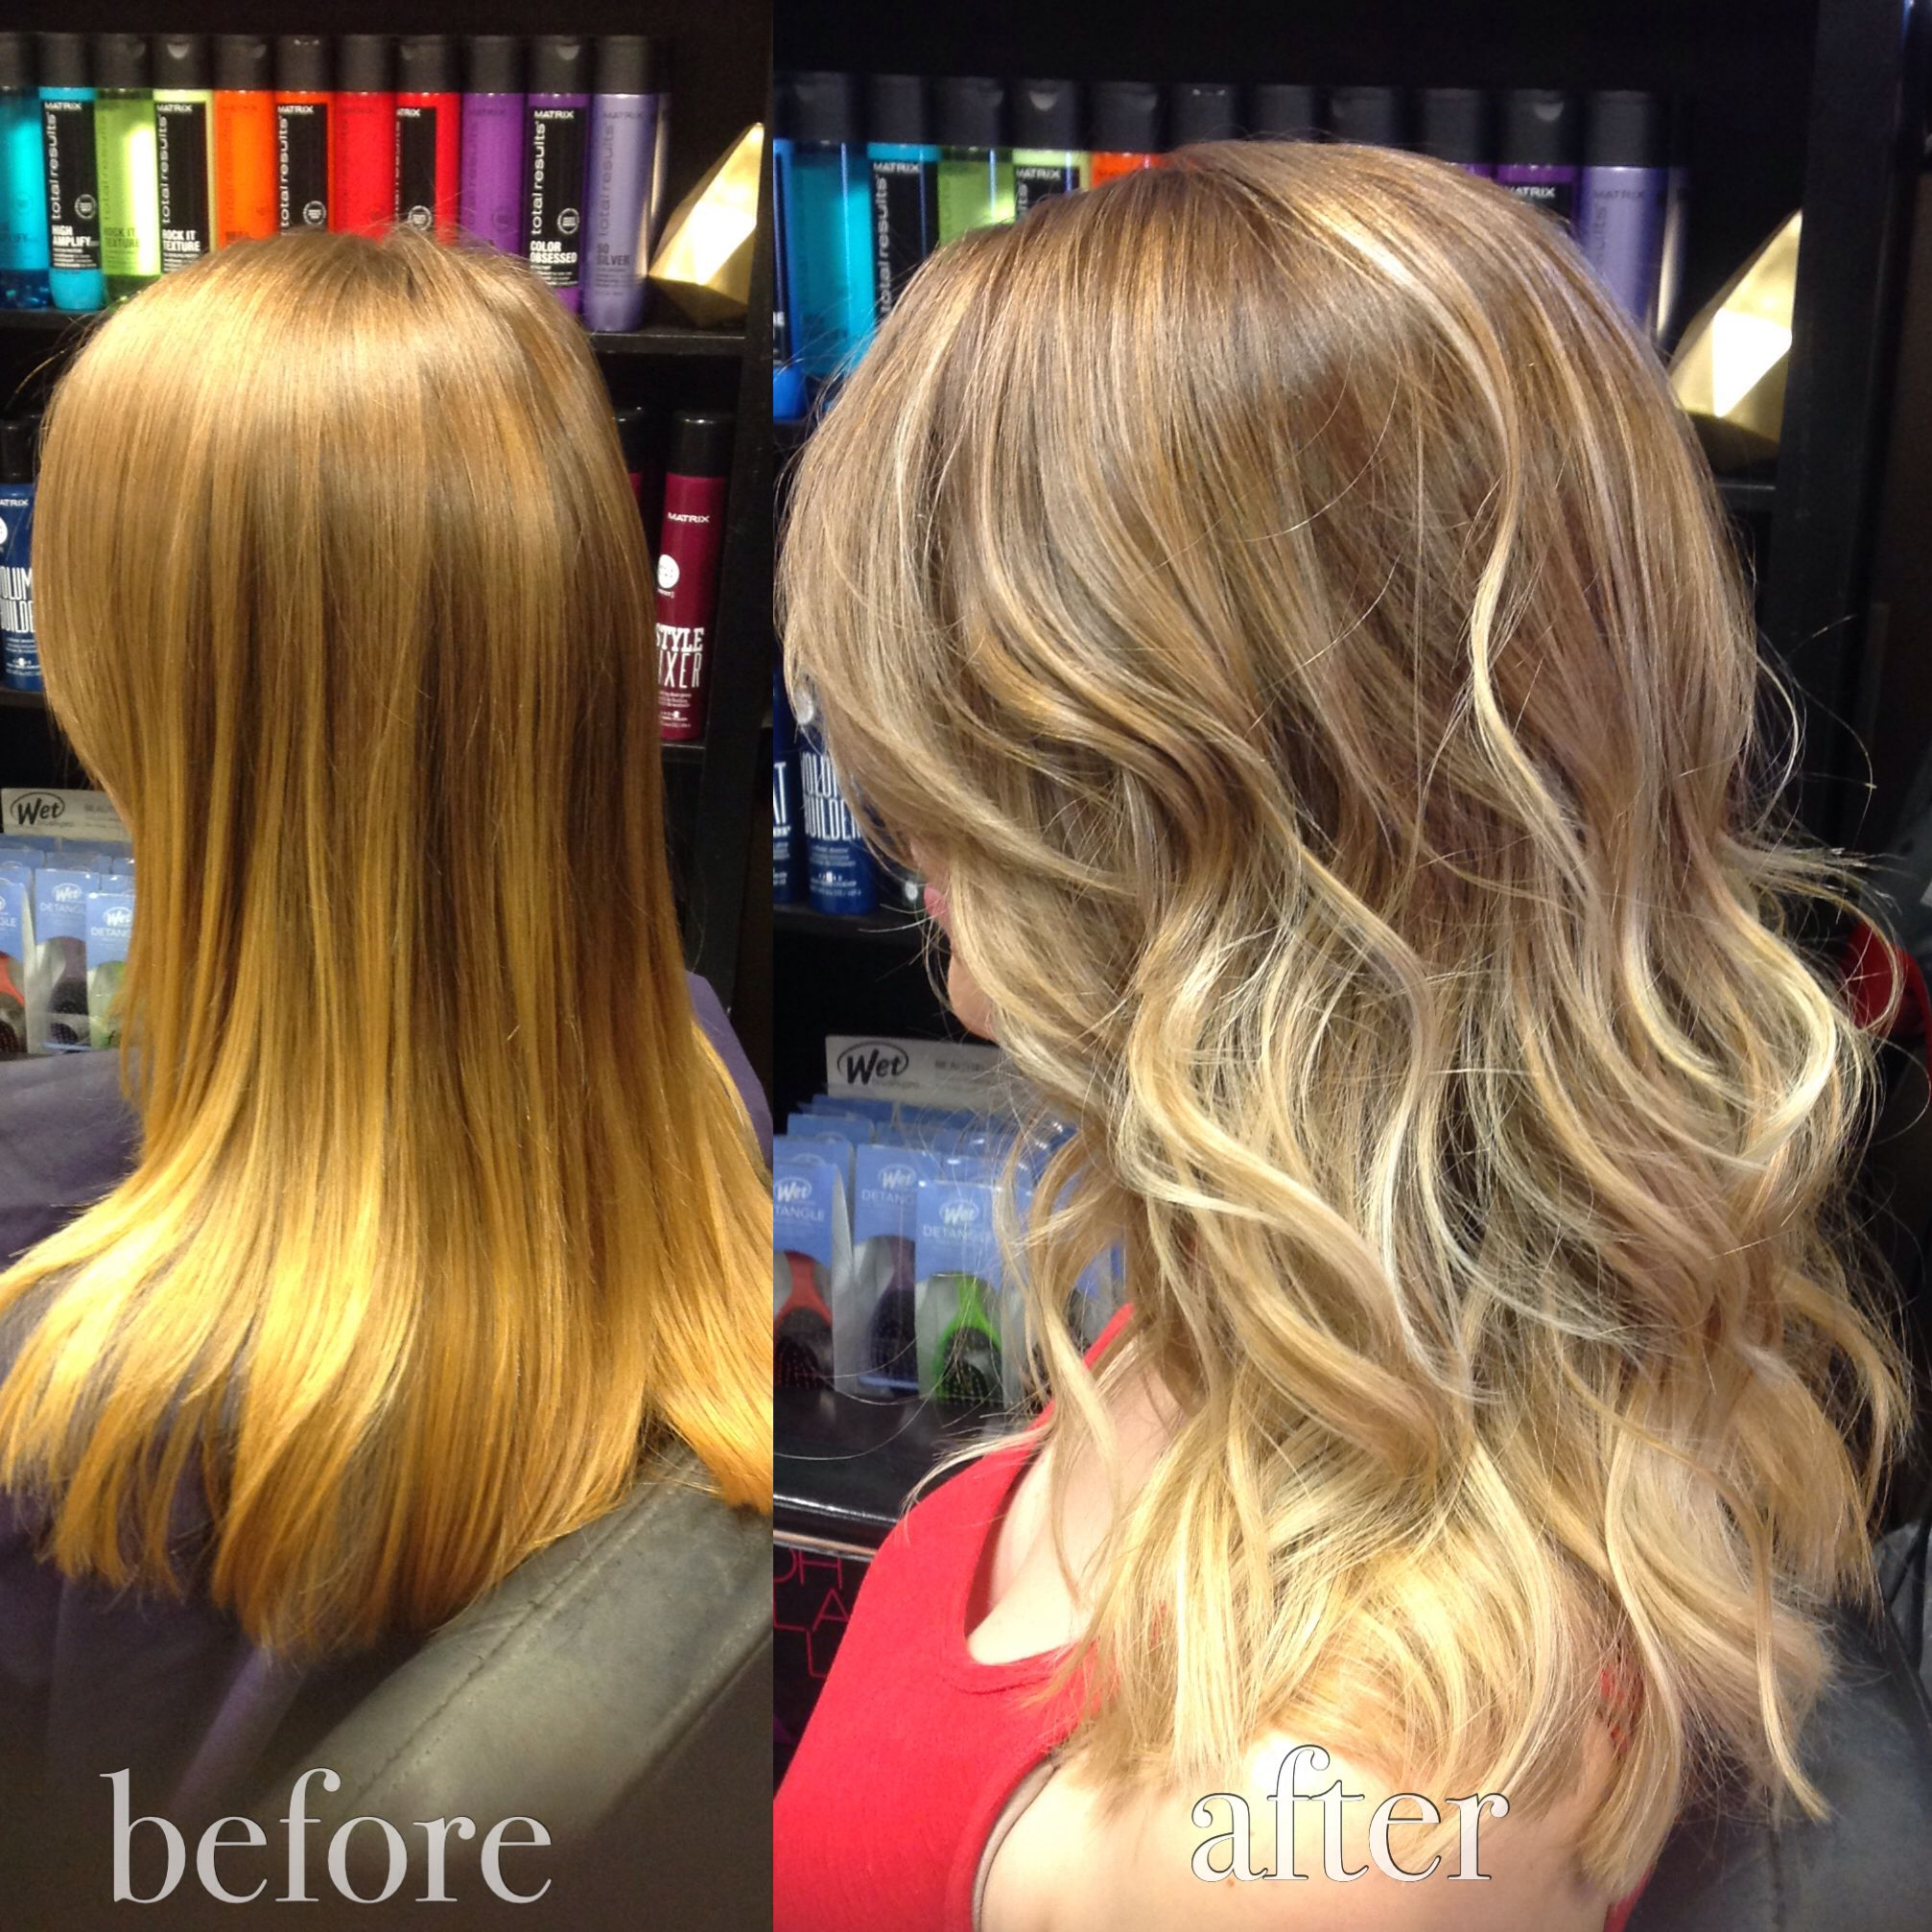 Tape up haircut for boys blonde  hair by lindsey  pinterest  blondes